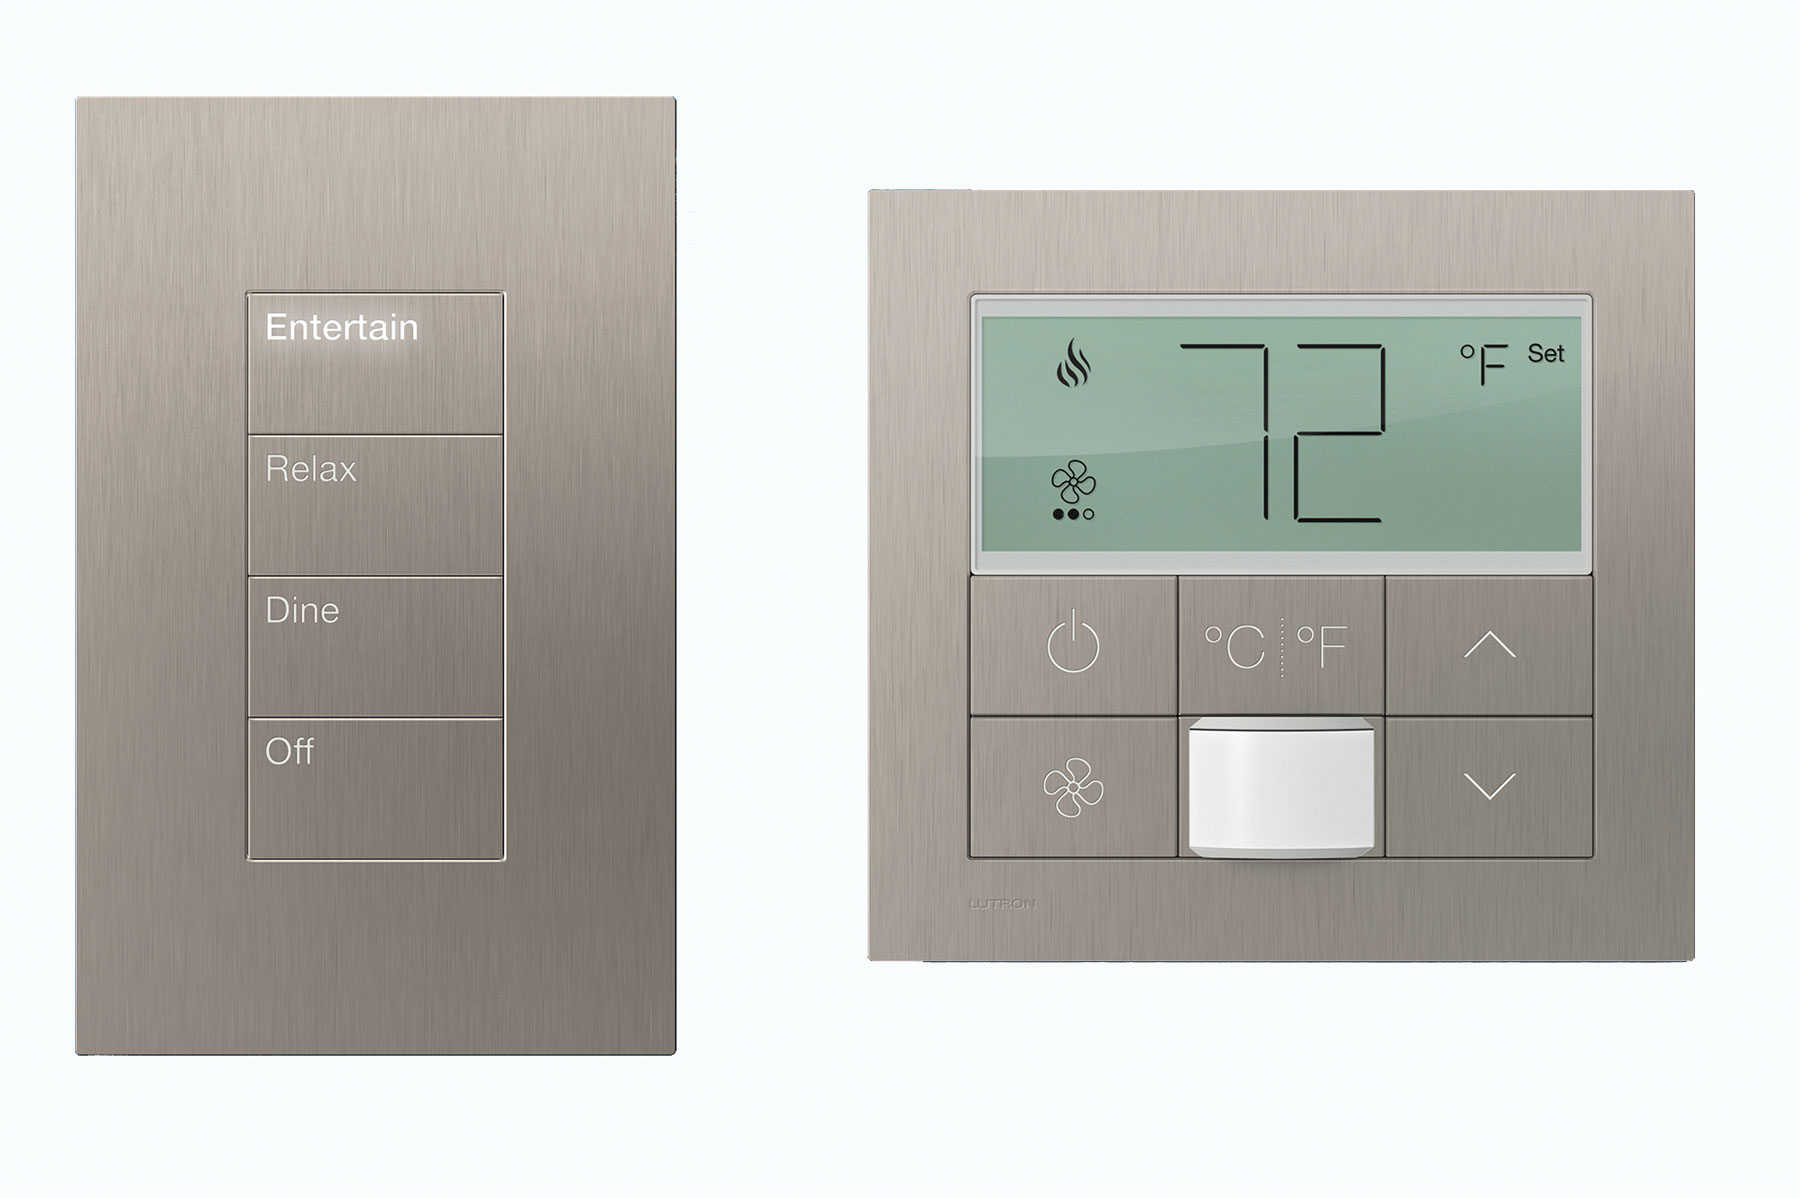 Lutron-MyRoom-Solution-with-Palladiom-keypad (1)